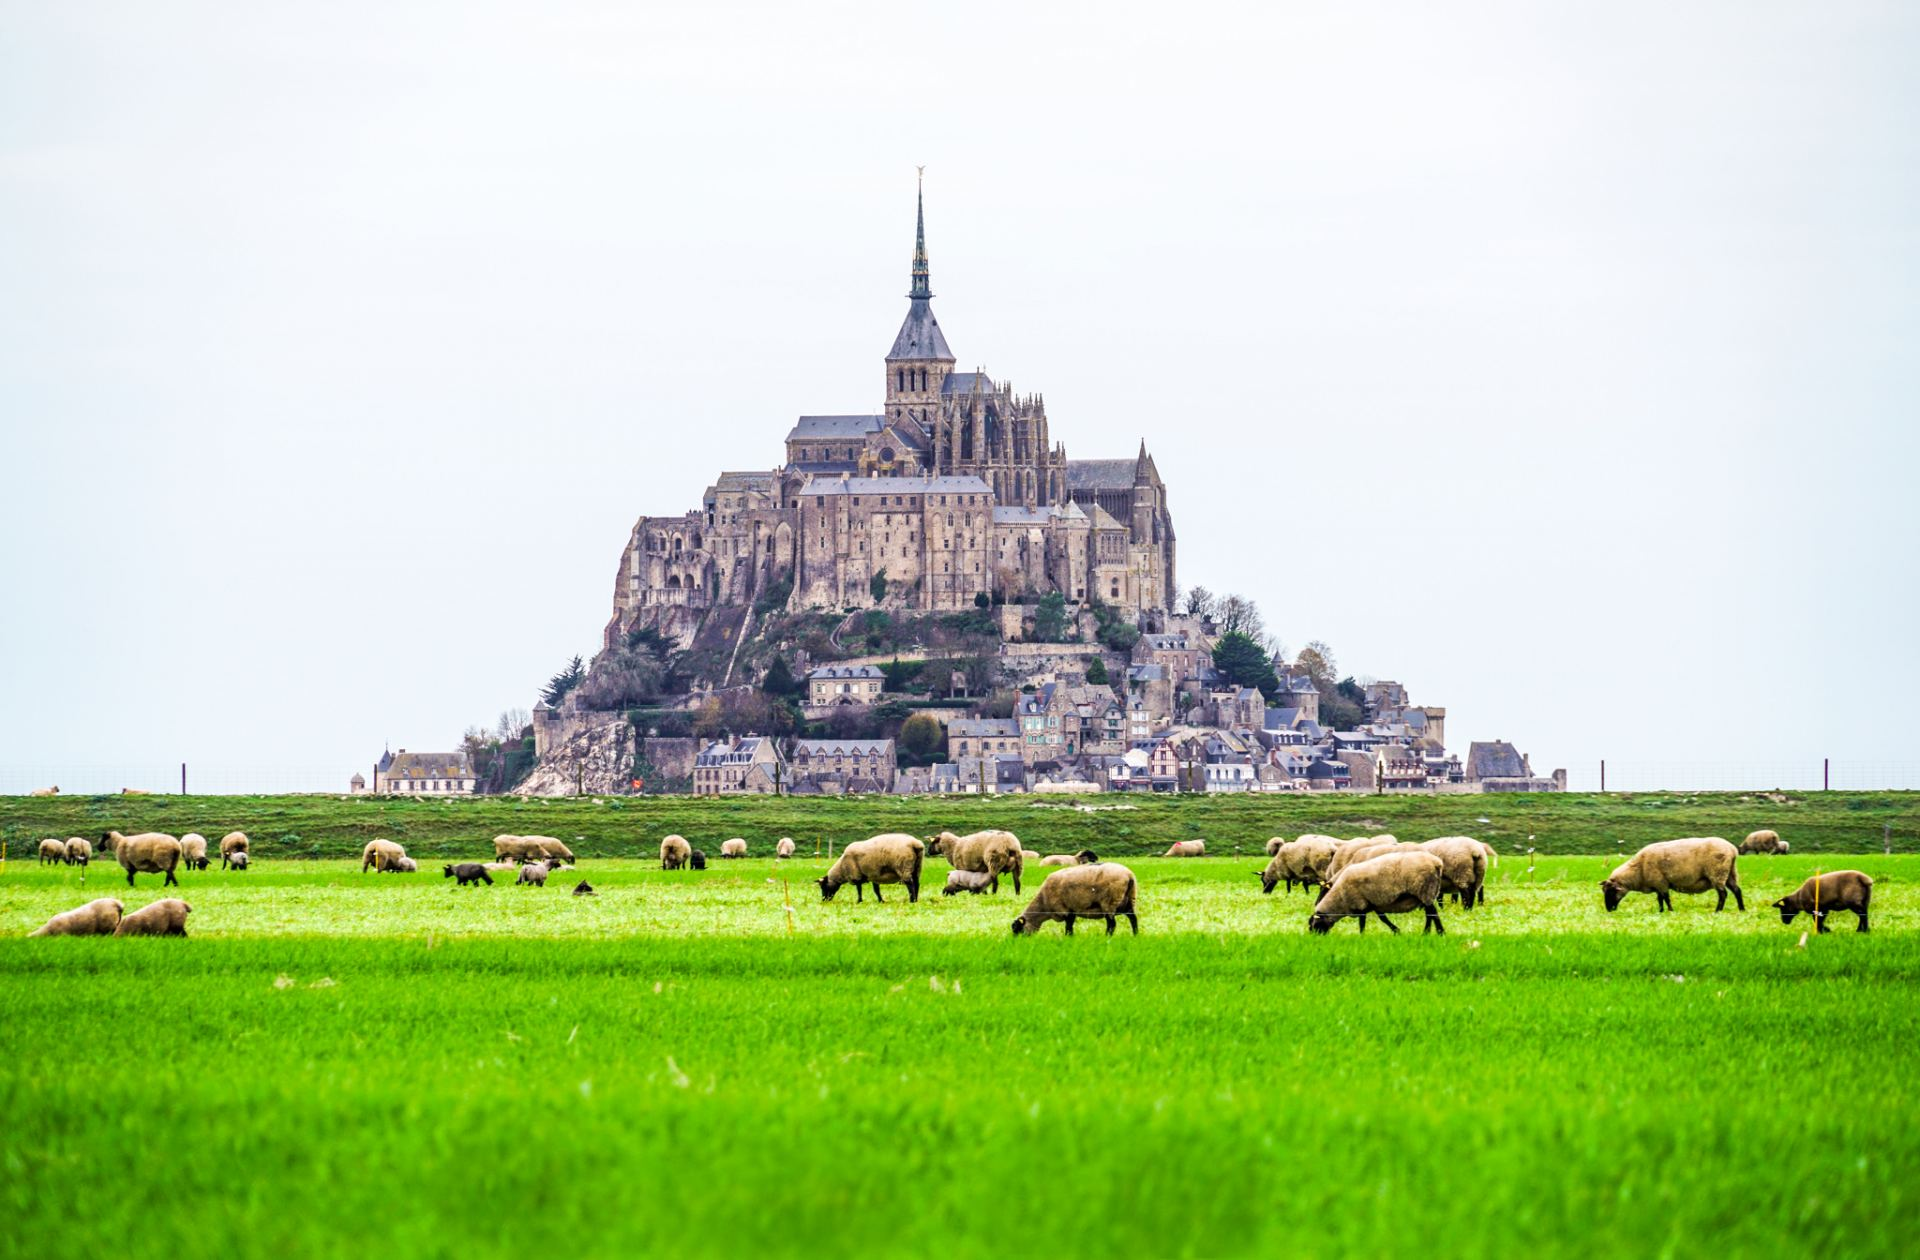 Mont Saint-Michel with Agneau de pré-salé (salt meadow lambs) grazing in a pasture covered in halophyte grasses with a high salinity and iodine content, causing their meat to have a distinct taste that is considered a delicacy.